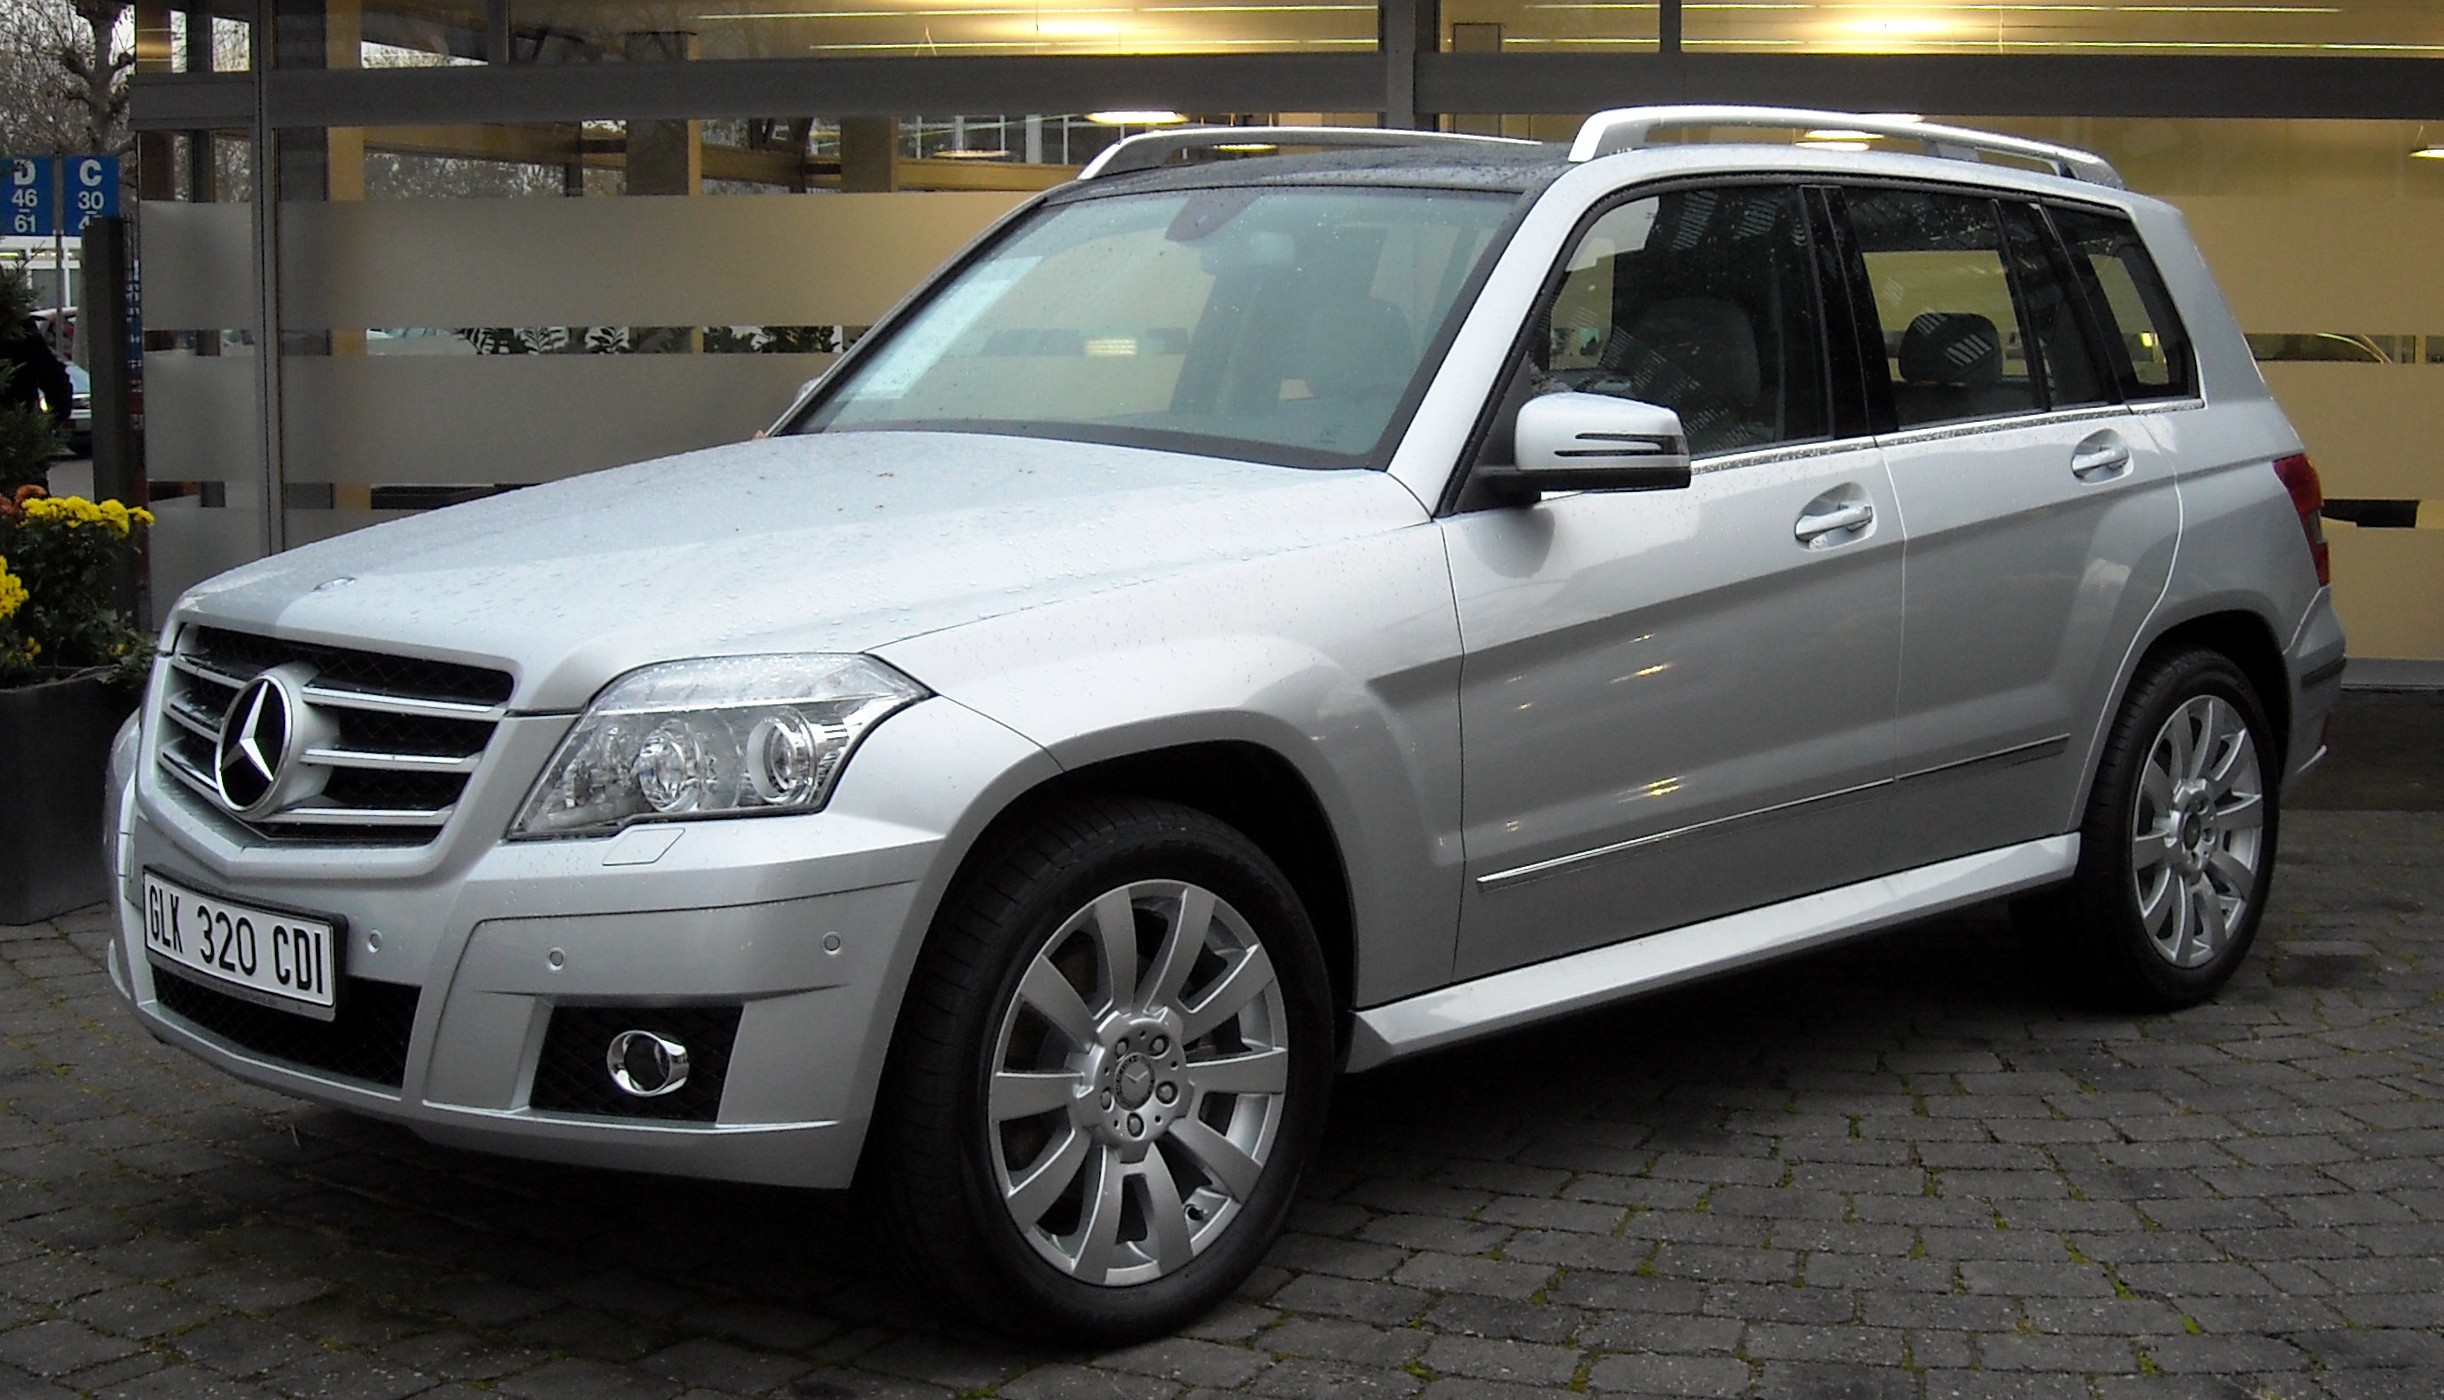 Mercedes benz glk luxury crossover suv review for Mercedes benz cross over